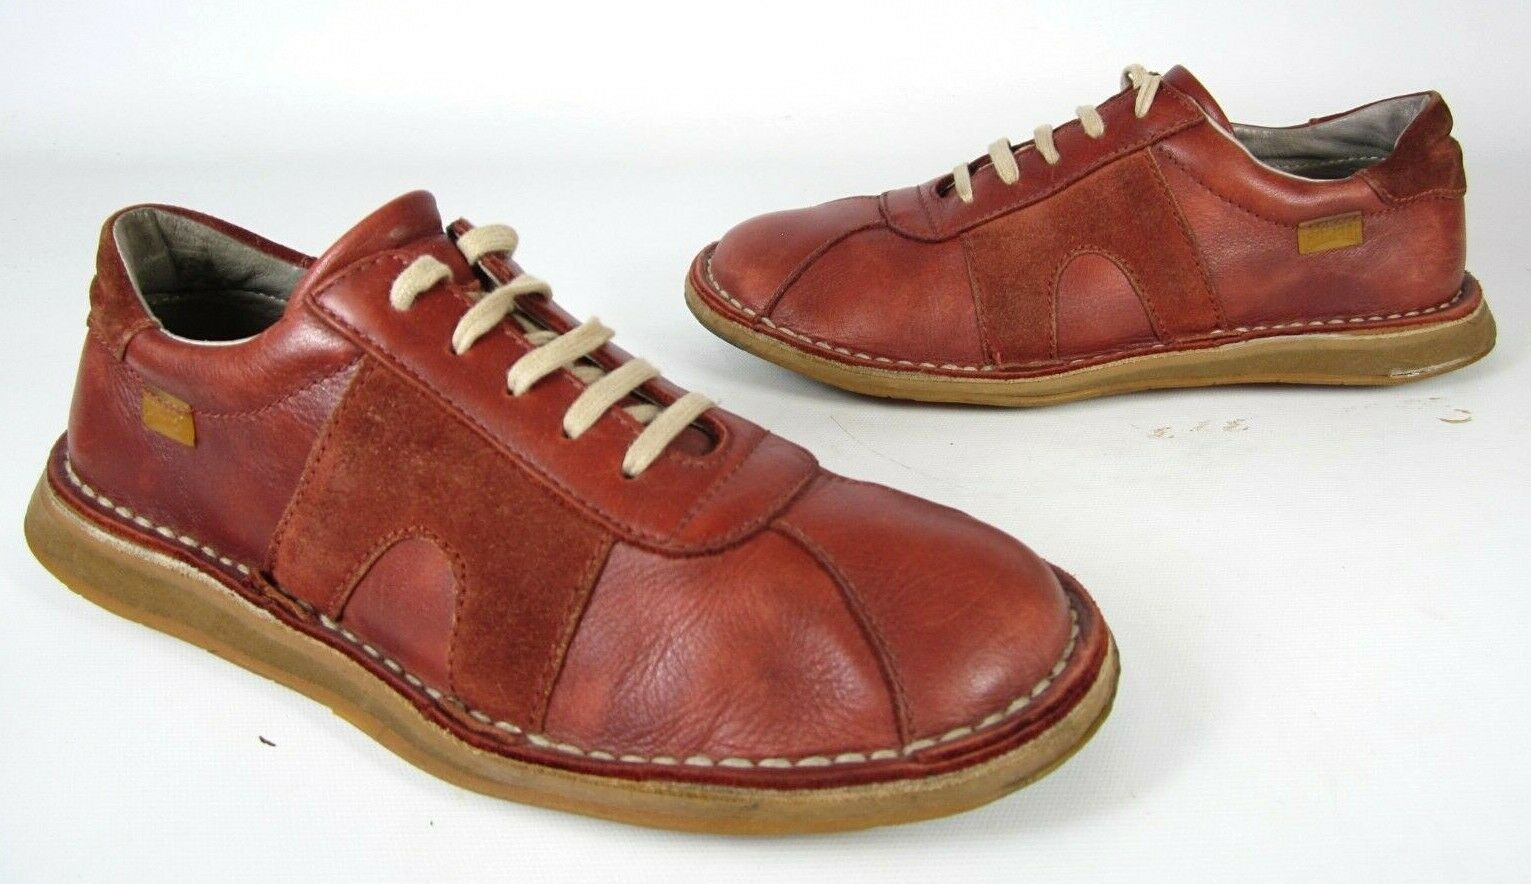 CAMPER LEATHER LACE UP CASUAL OXFORDS SNEAKERS WOMEN'S SHOE SIZE 8